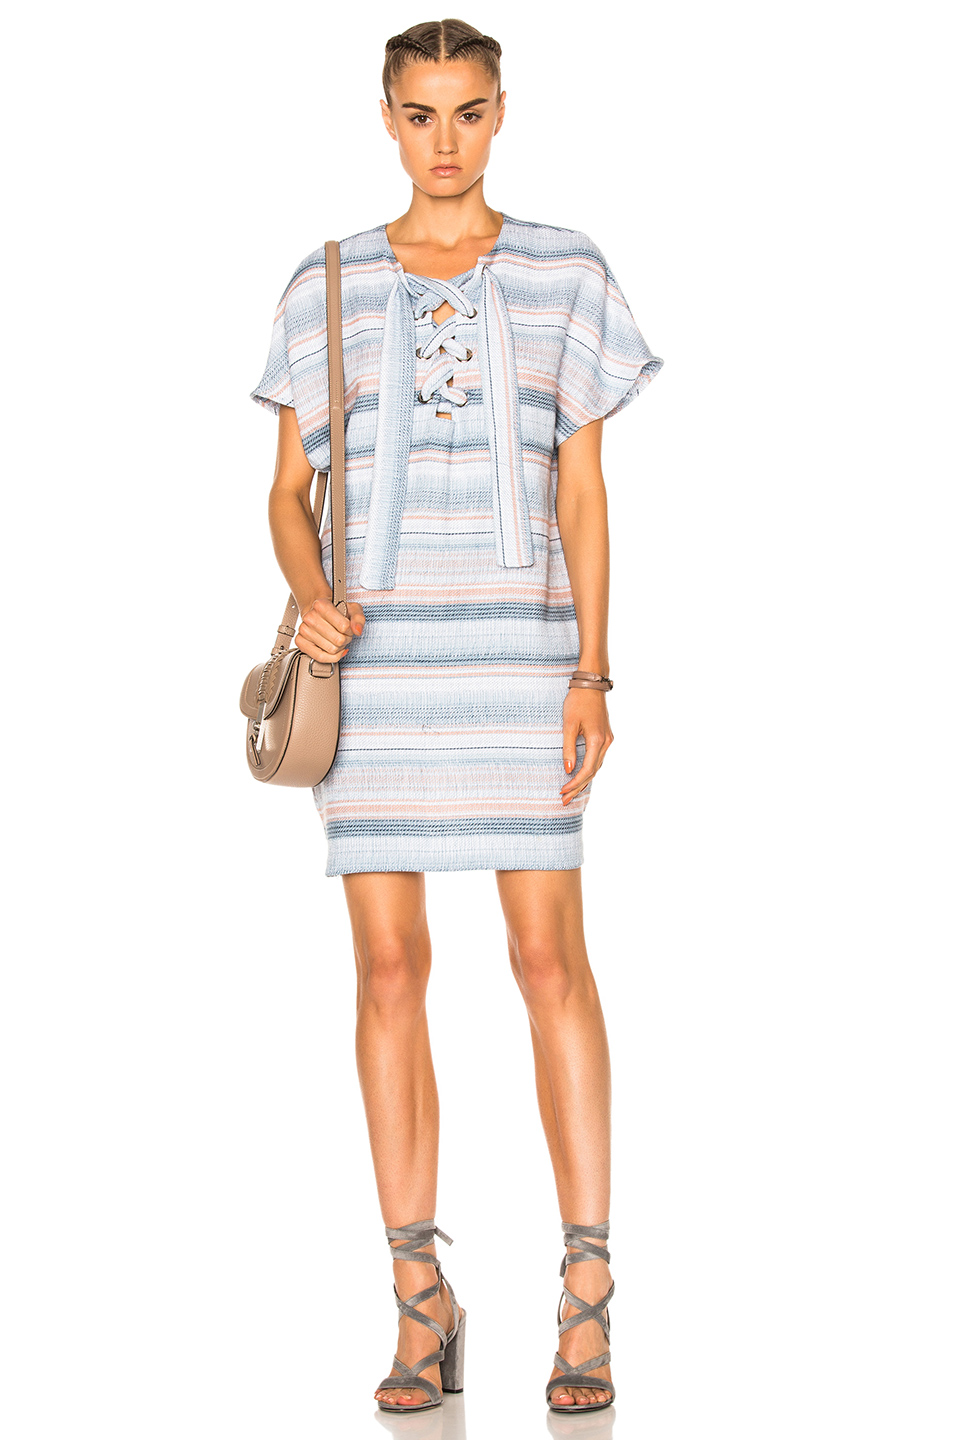 Mara Hoffman Lace Up Mini Dress in Blue,Pink,Stripes,White